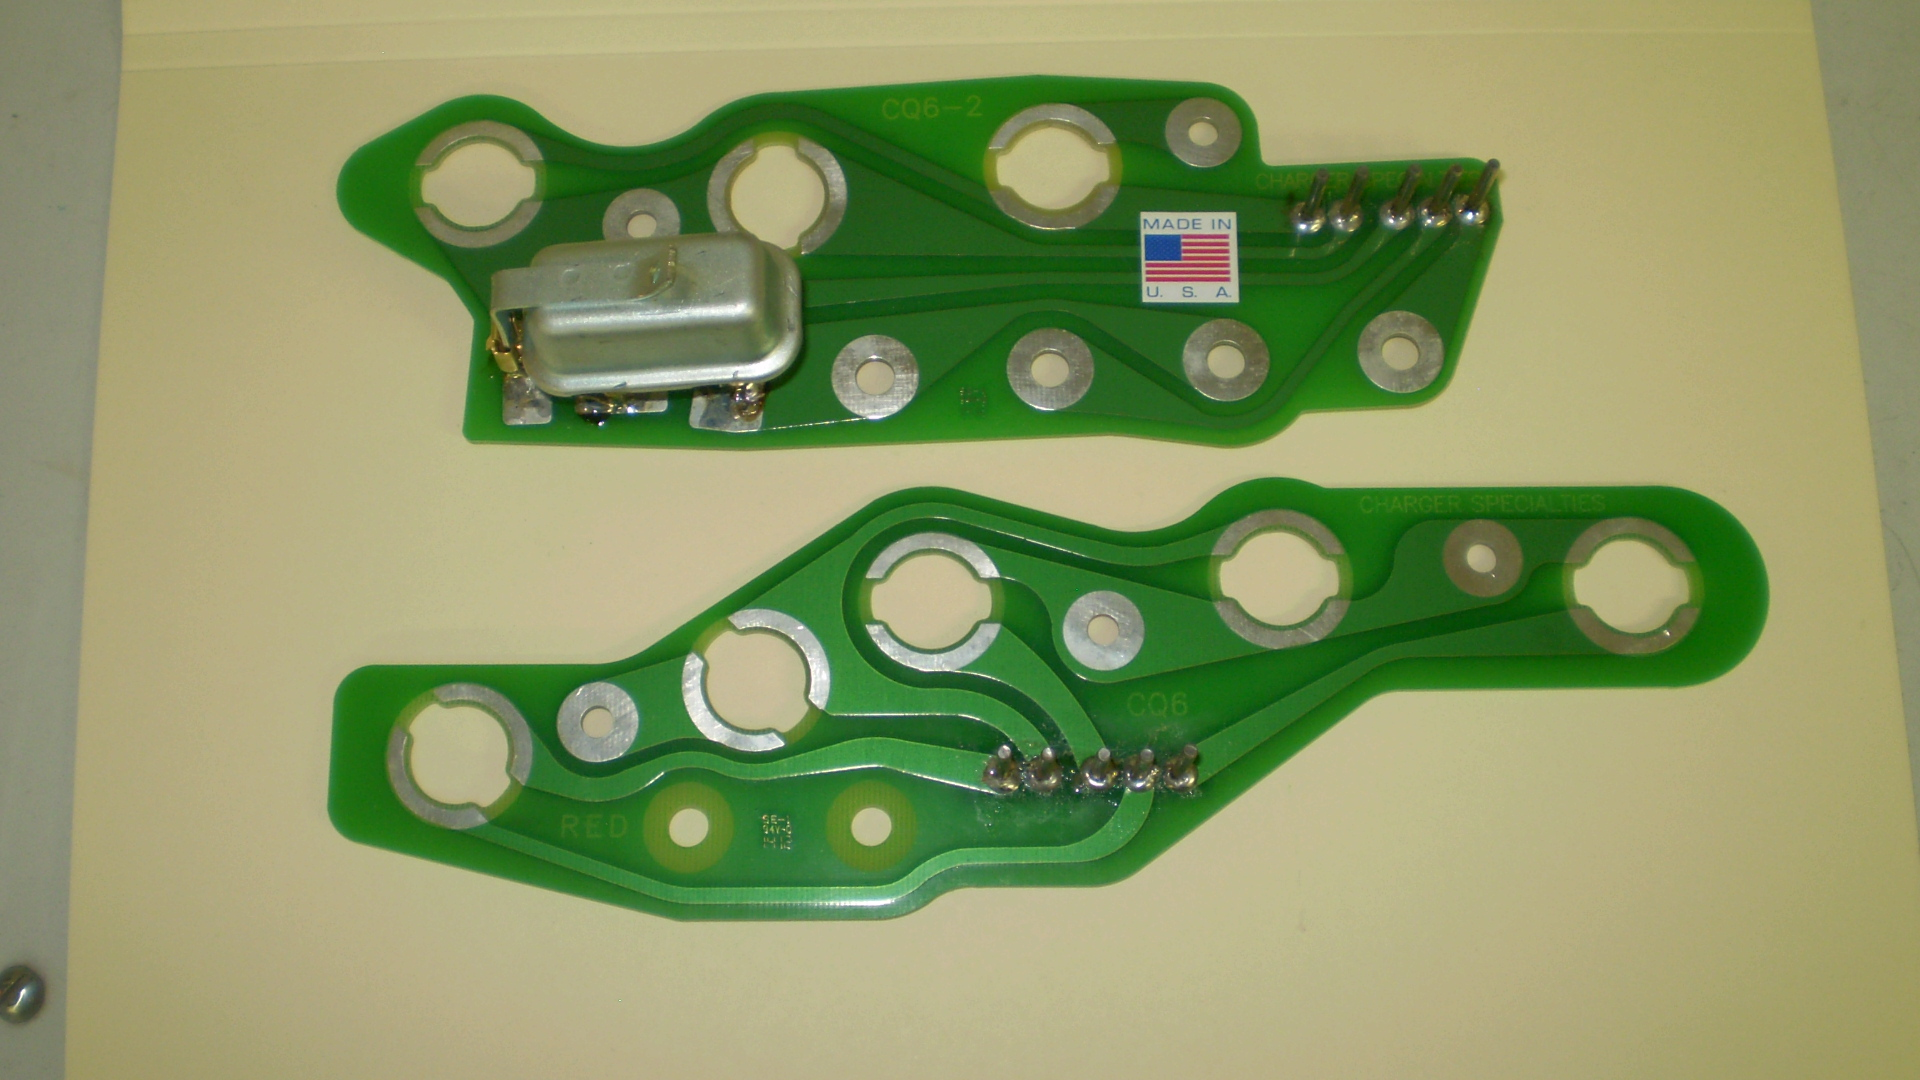 67-71 A BODY DART, SCAMP NON RALLYE CIRCUIT BOARD WITH LIMITER